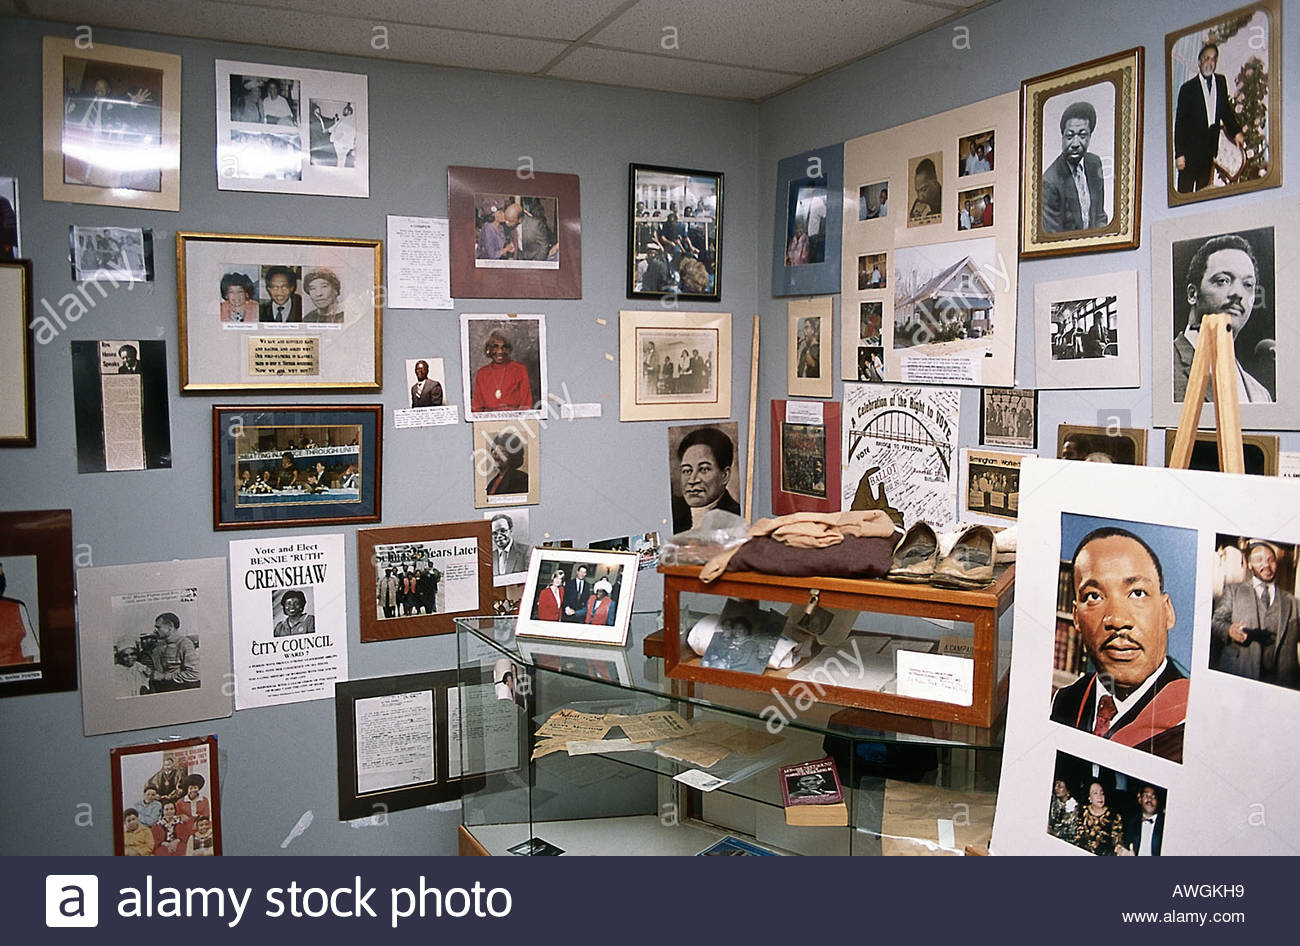 USA, Alabama, Selma, National Voting Rights Museum, photographs and illustrations on display - Stock Image